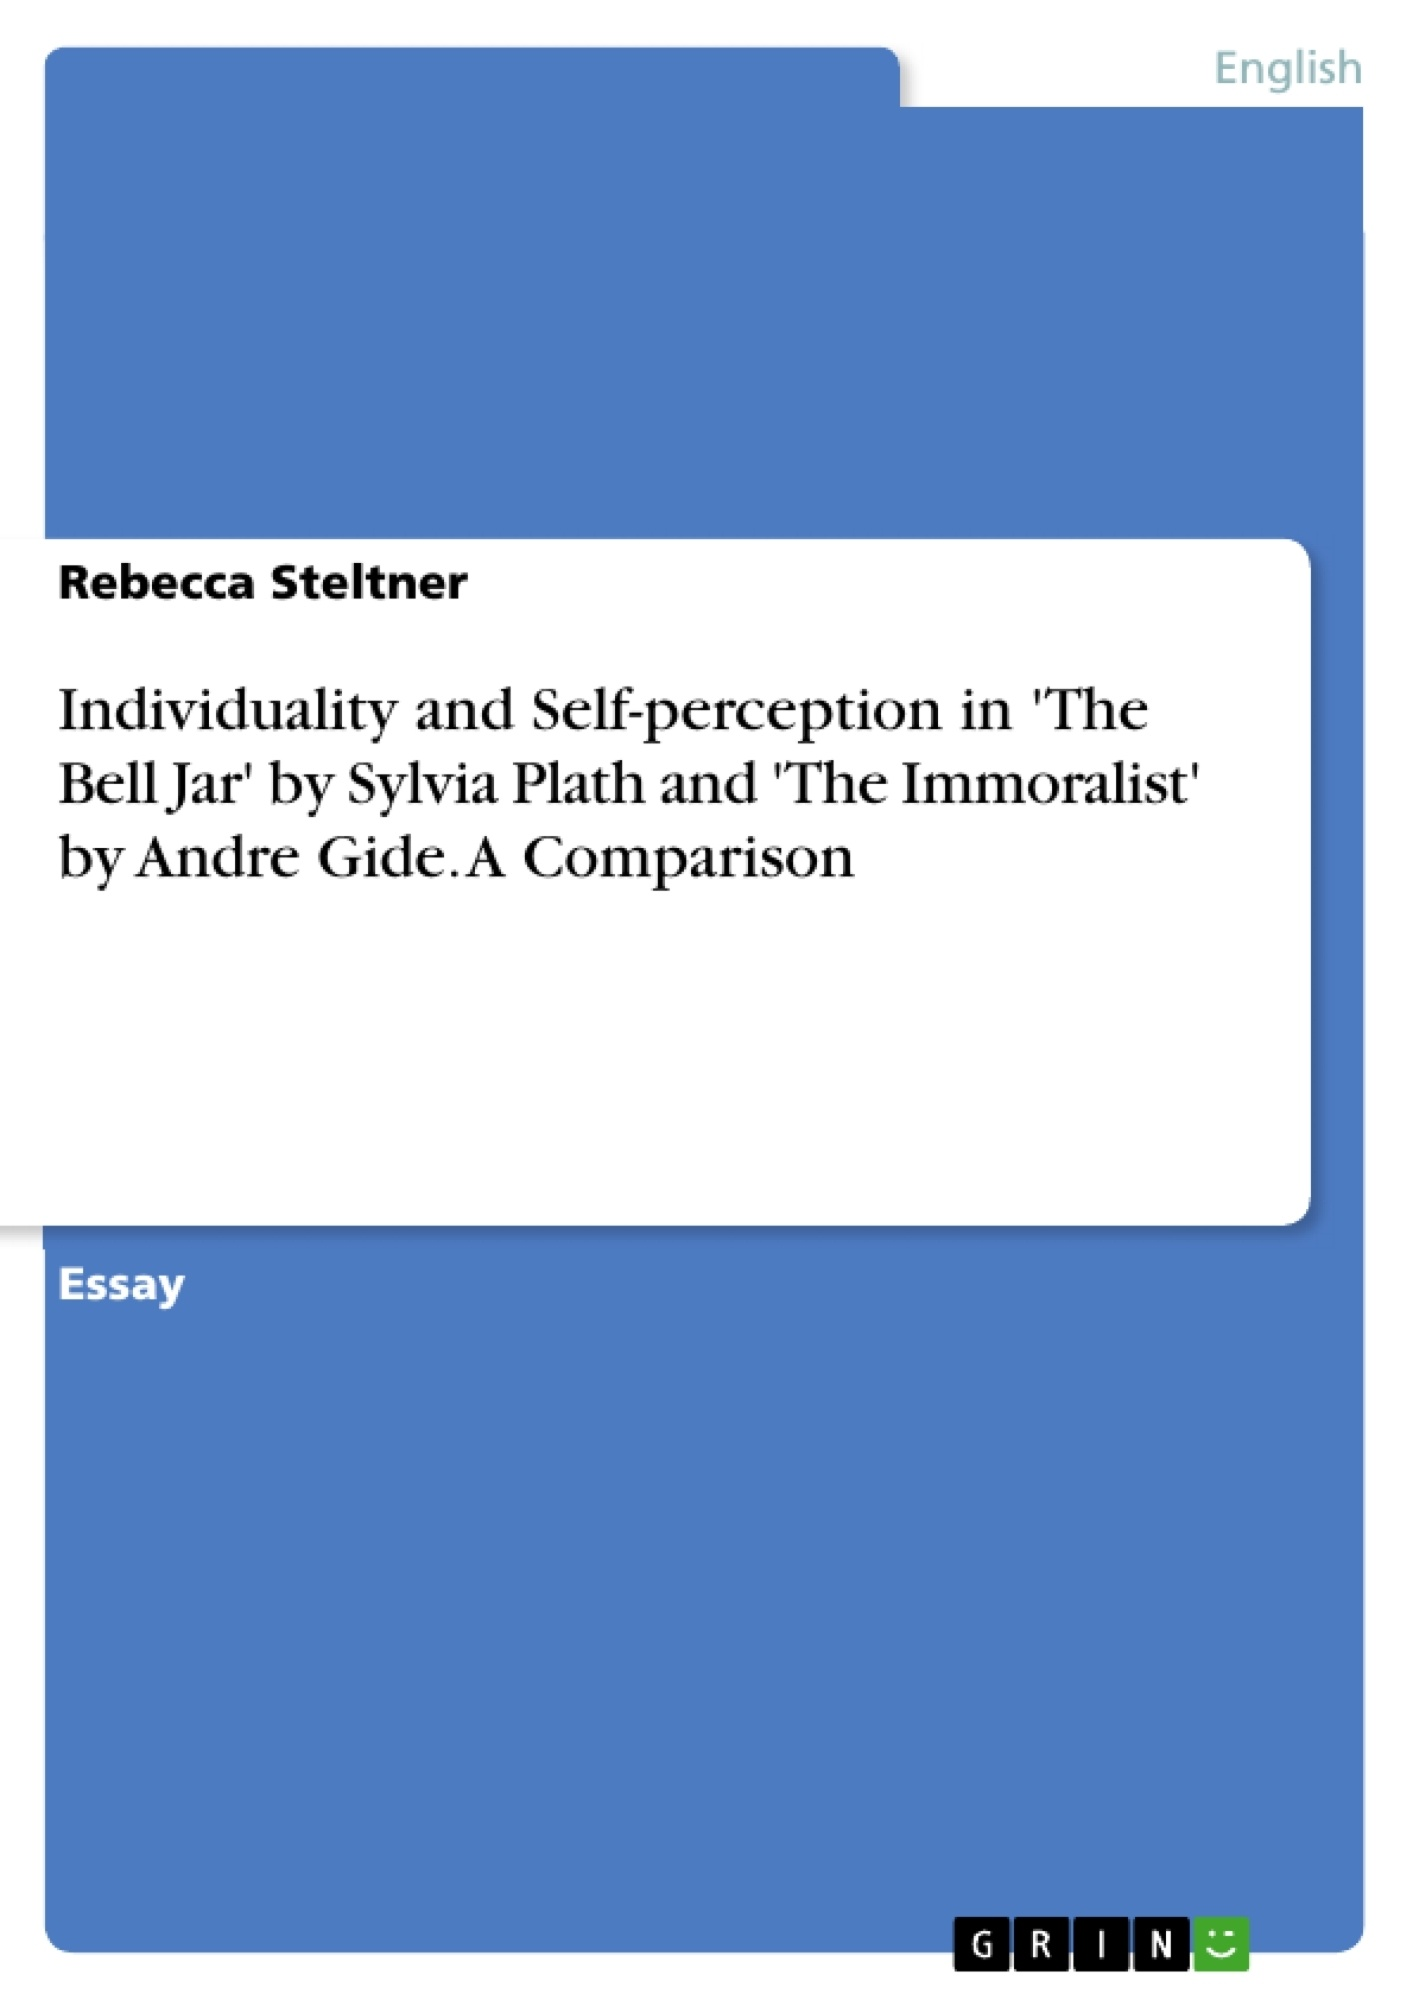 Title: Individuality and Self-perception in 'The Bell Jar' by Sylvia Plath and 'The Immoralist' by Andre Gide. A Comparison